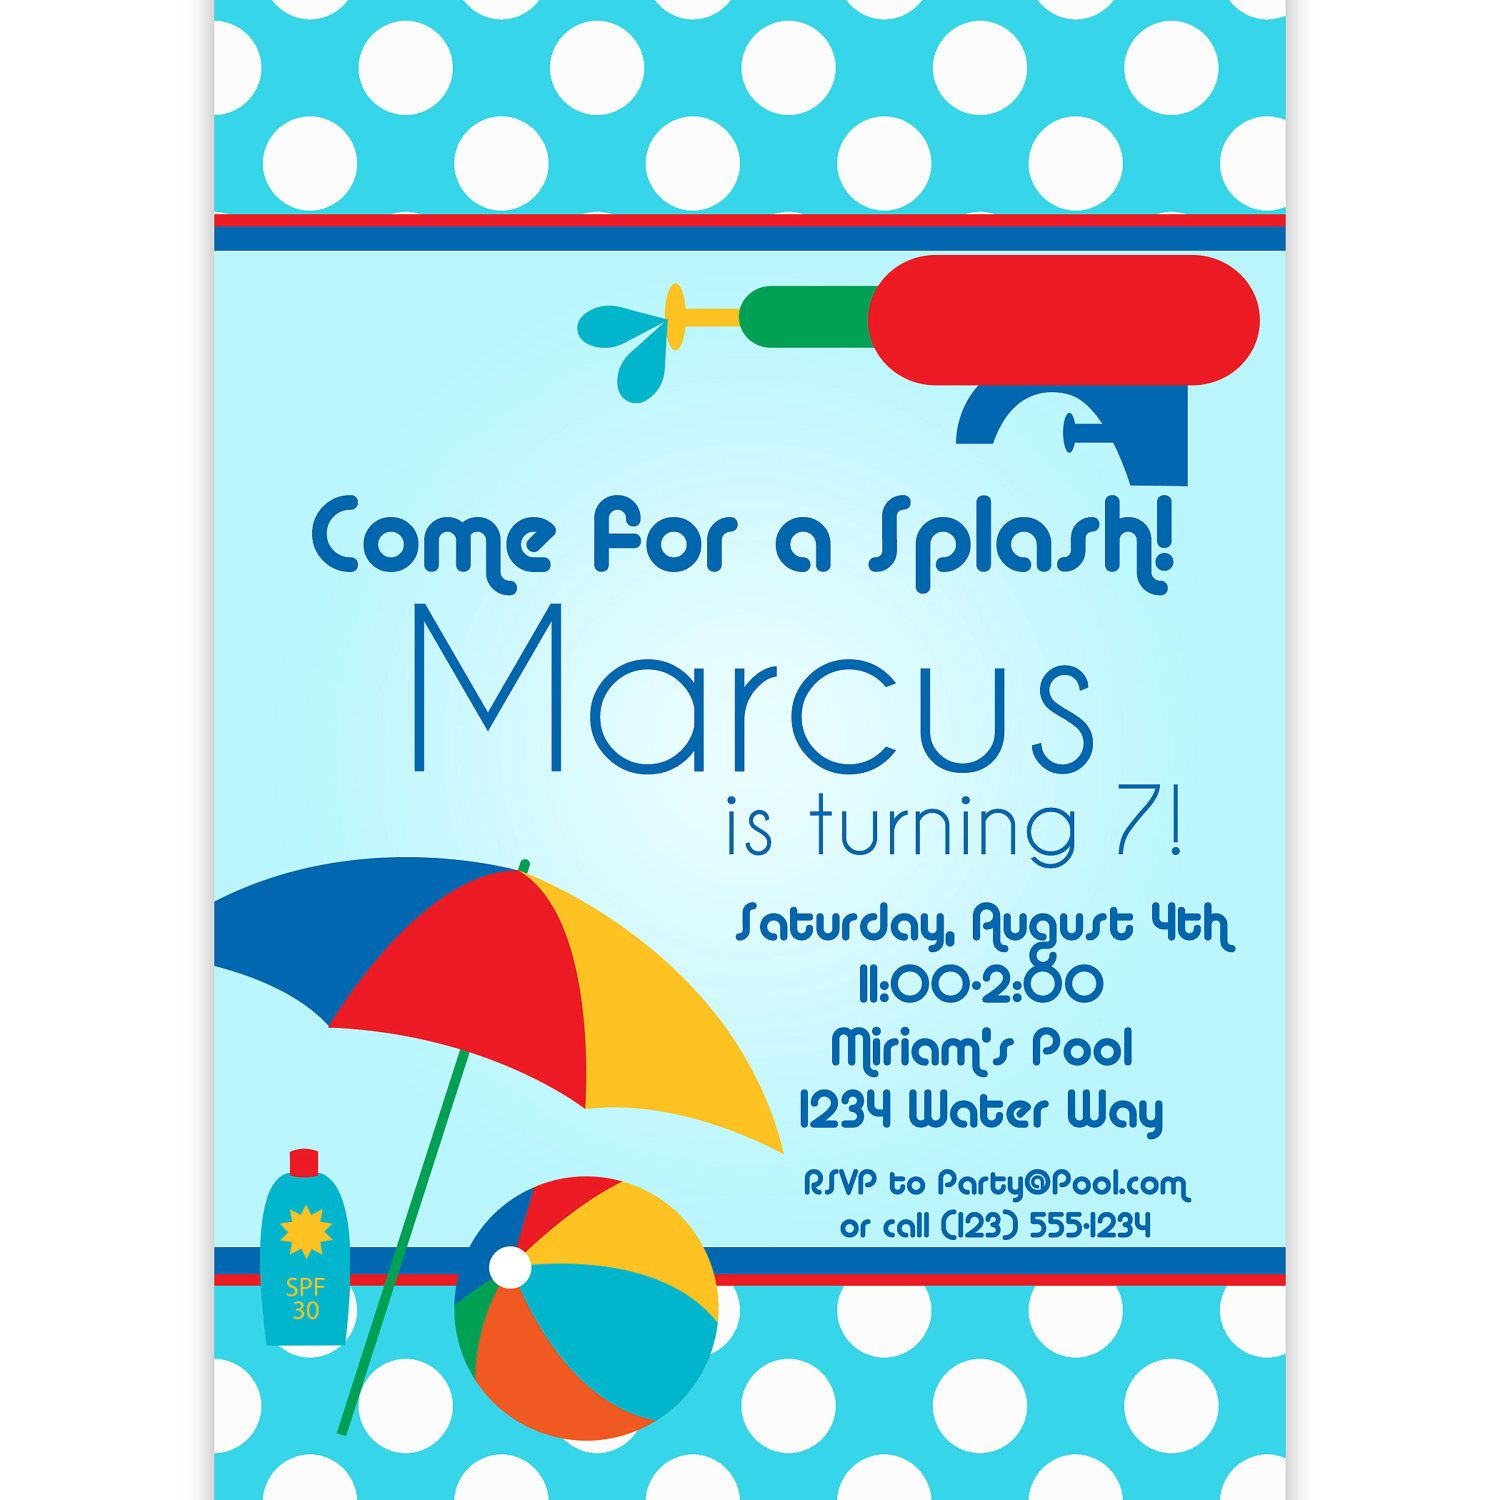 doc 600429 pool birthday party invitations pool party pool party invitation blue polka dots and red water squirt gun pool birthday party invitations